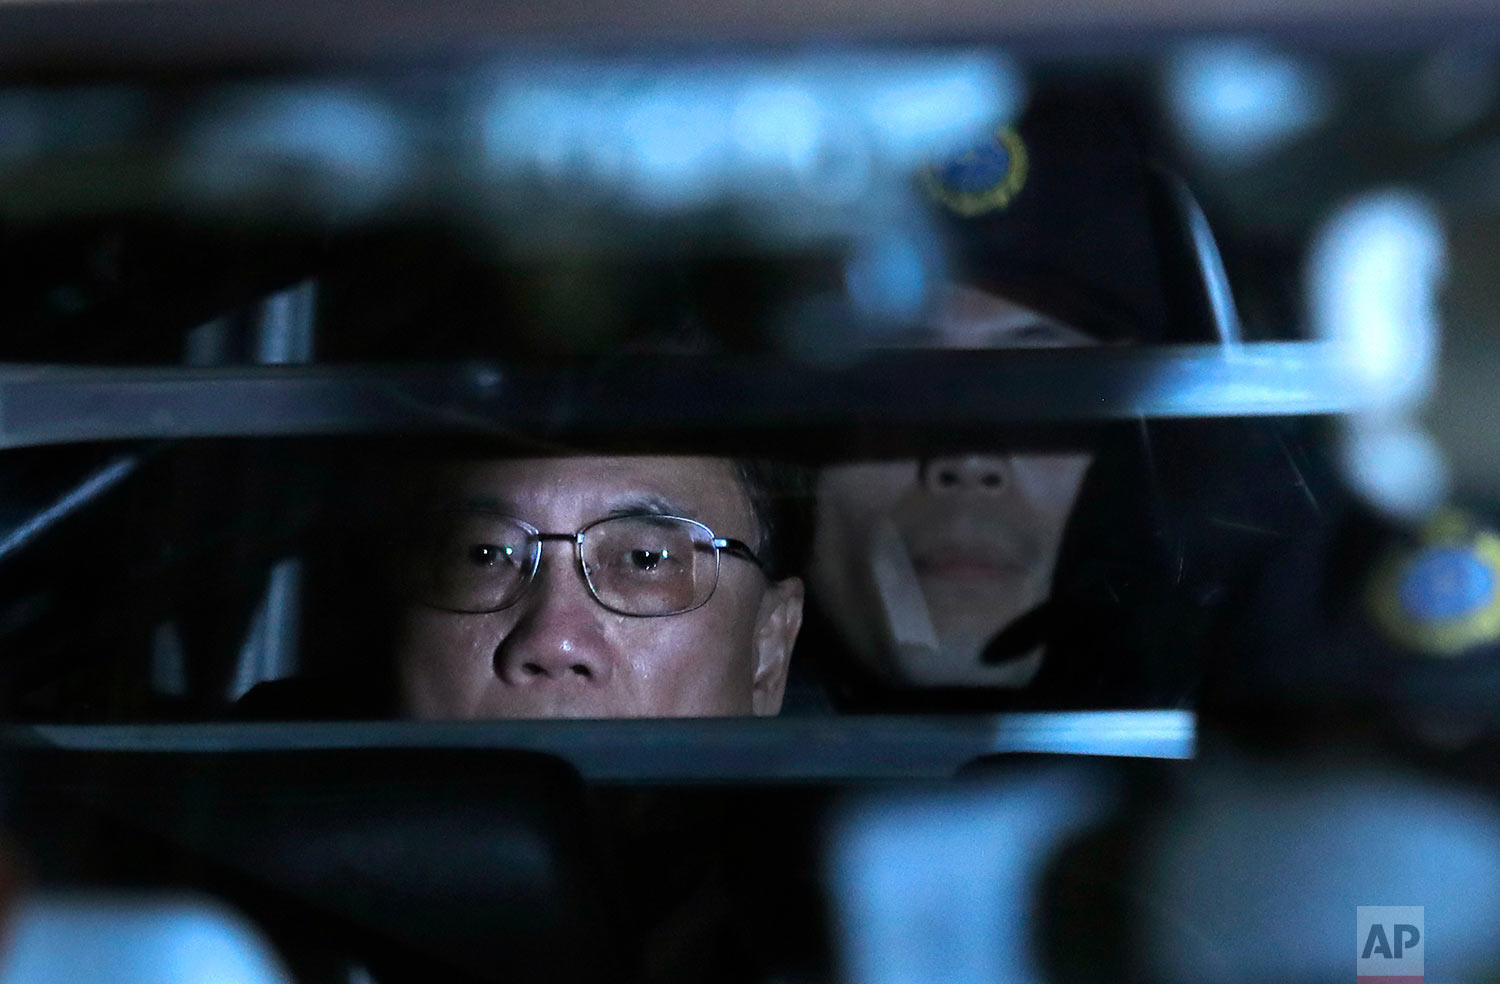 In this Monday, Feb. 20, 2017 photo, Donald Tsang, center, former leader of Hong Kong, is escorted in a prison bus leaving the high court after sentencing and mitigation after his conviction last week for misconduct in public office, in Hong Kong. Tsang was found guilty by a jury of one count of misconduct in public office over a luxury apartment in mainland China, making him the highest ranking current or former official to be convicted for corruption in the Asian financial hub. (AP Photo/Vincent Yu, File)